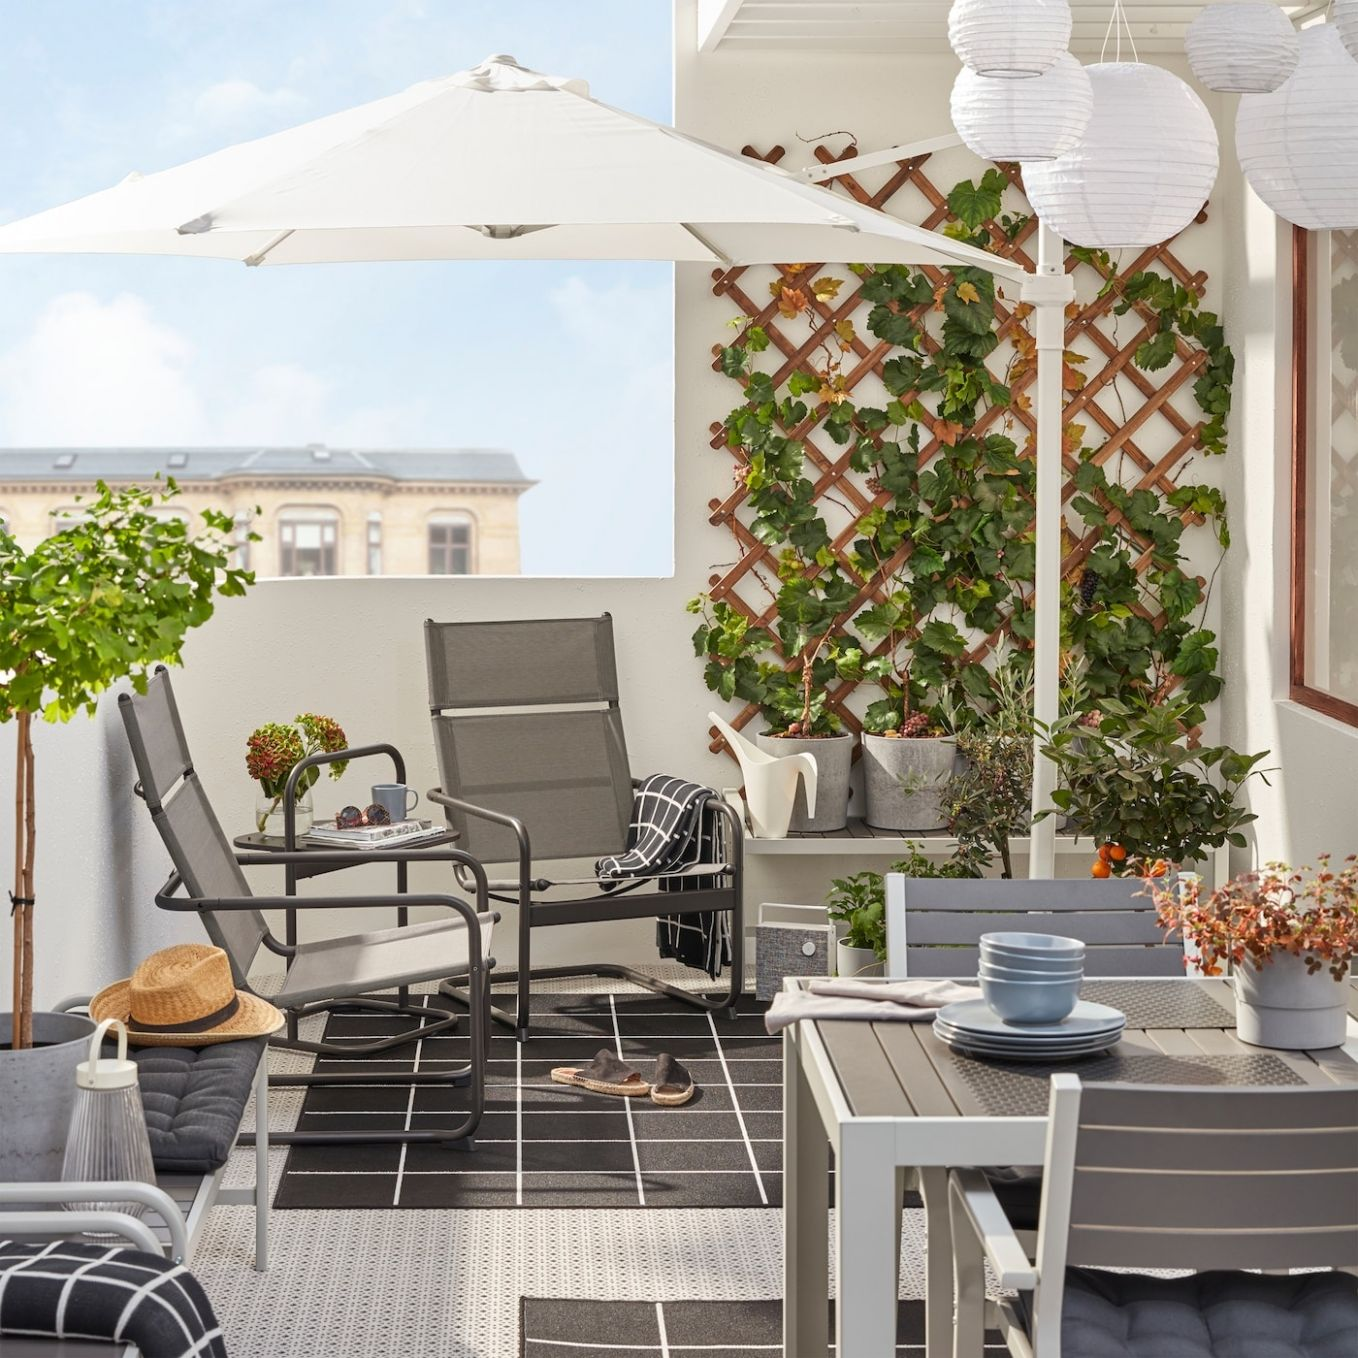 Inspiration for small outdoor spaces - Balcony ideas - IKEA - balcony ideas furniture